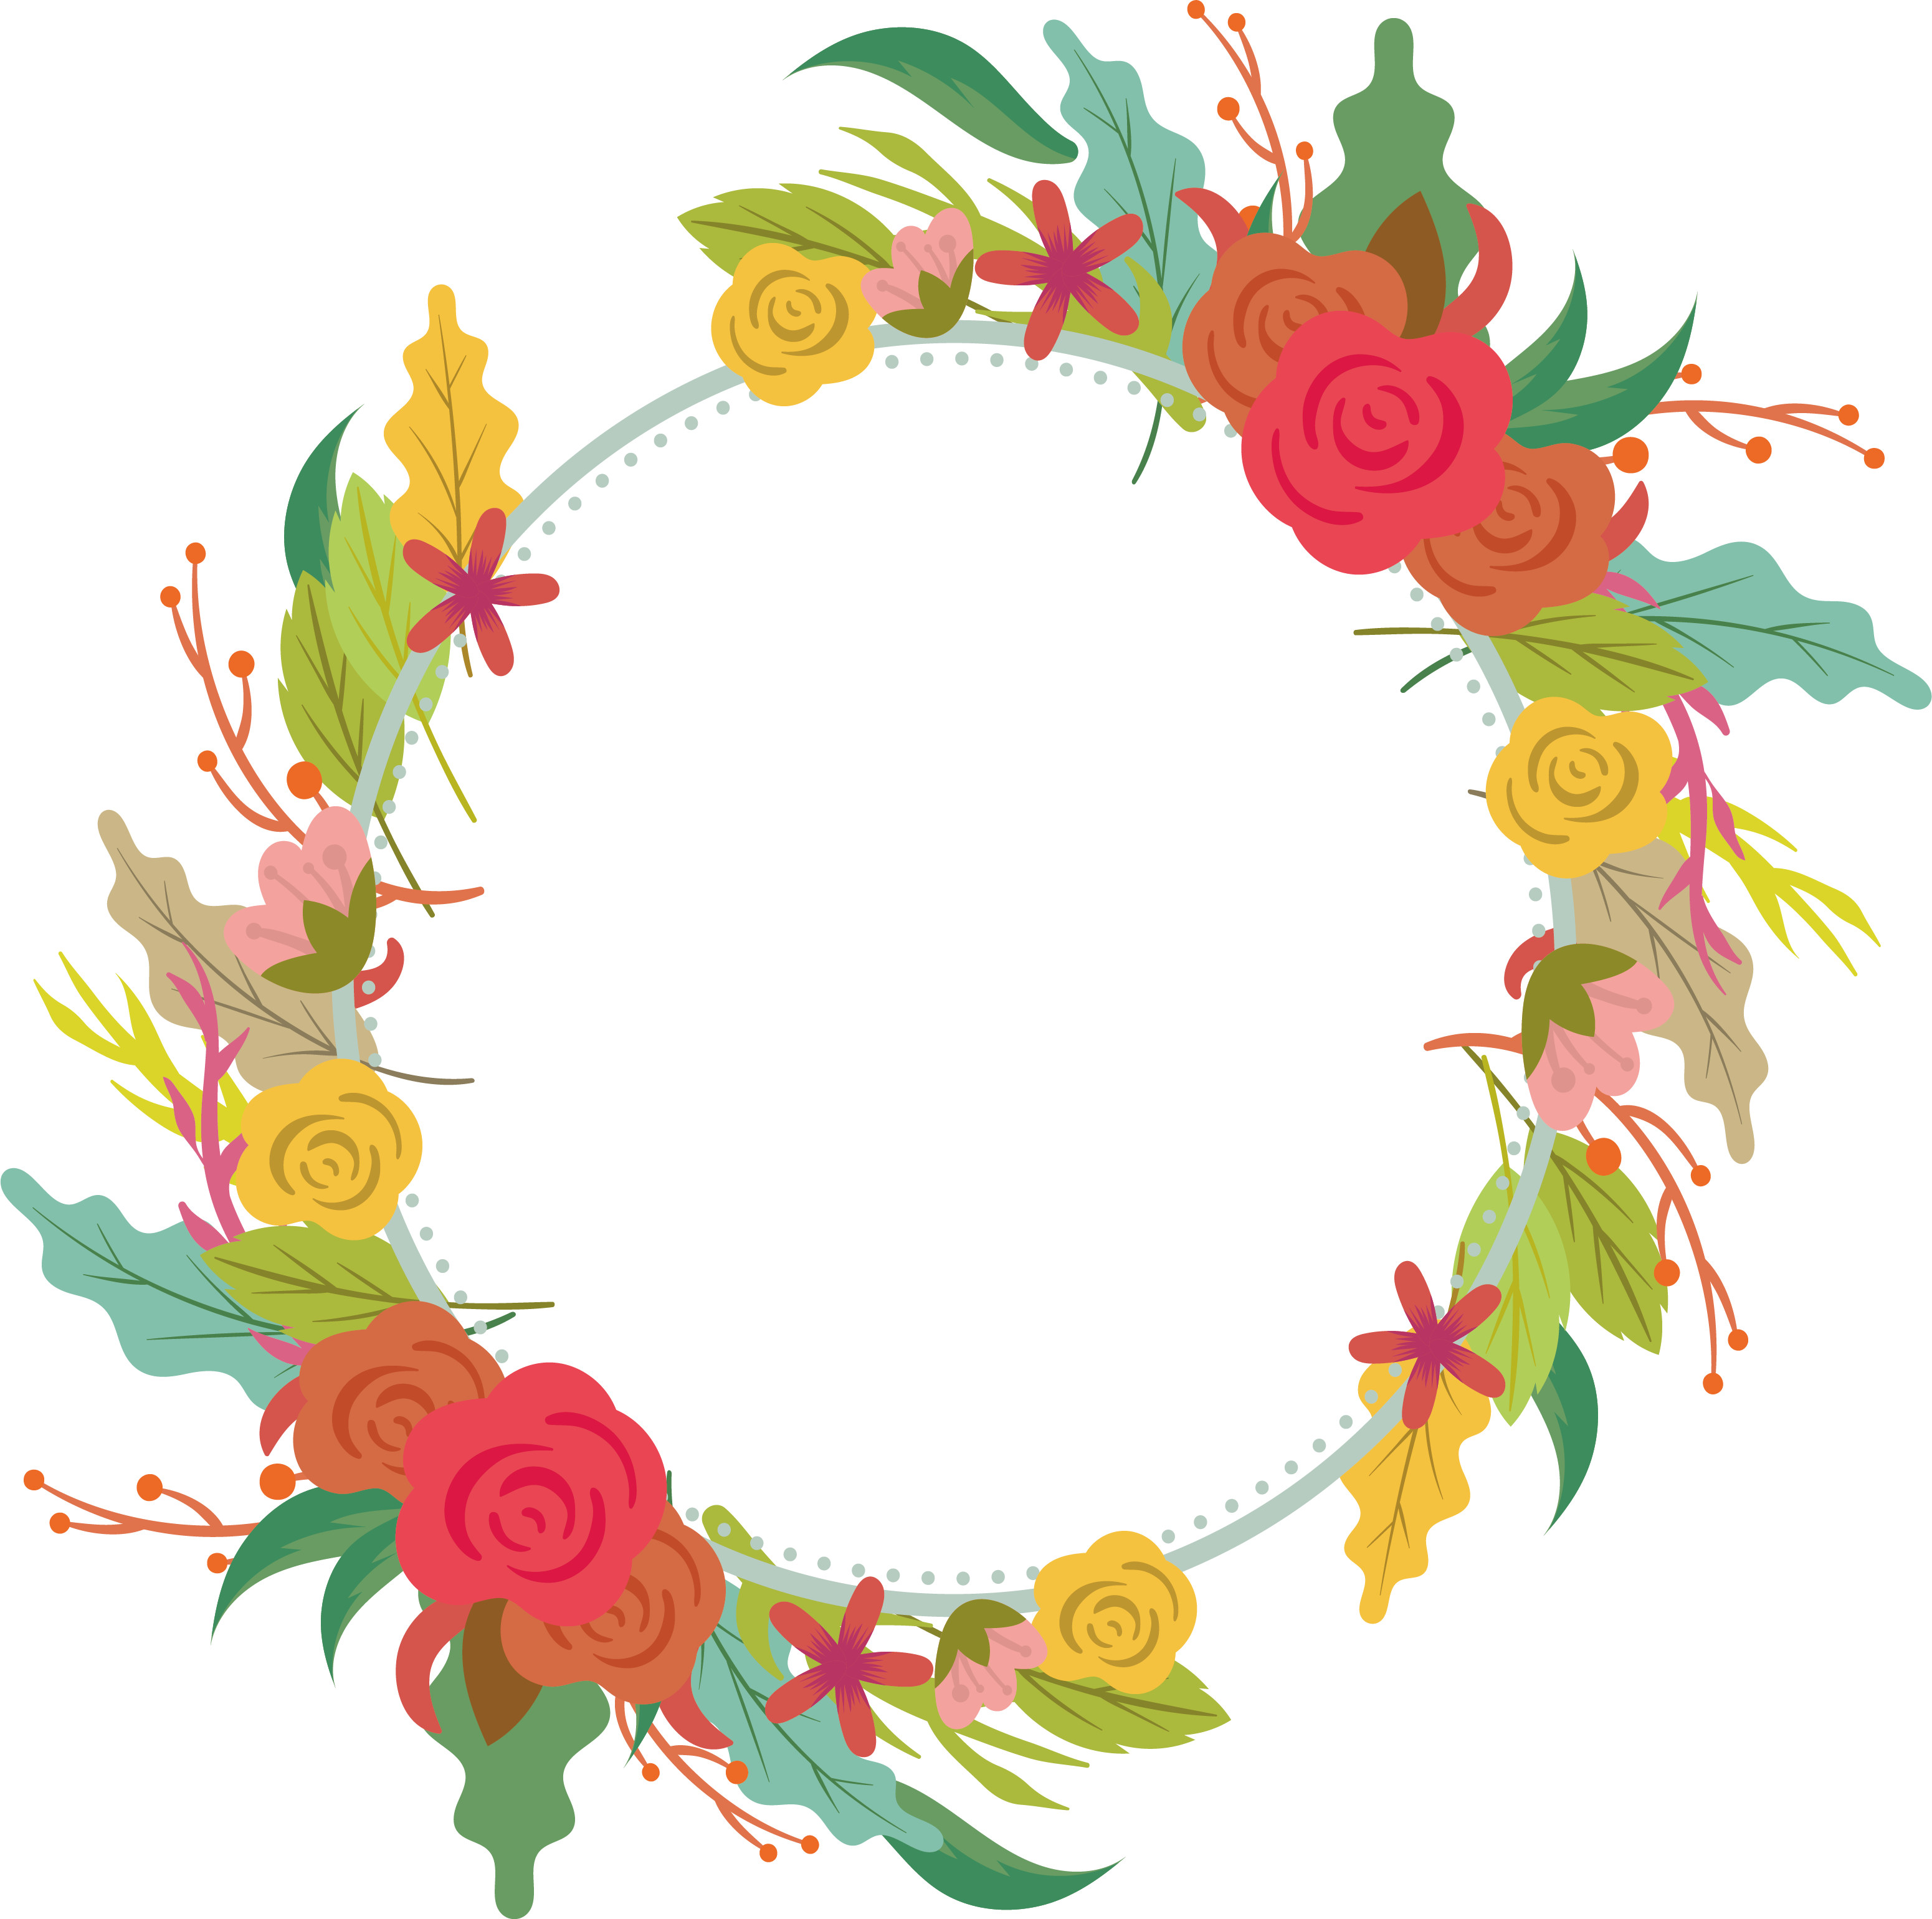 Floral design wreath beautiful. Flower garland png